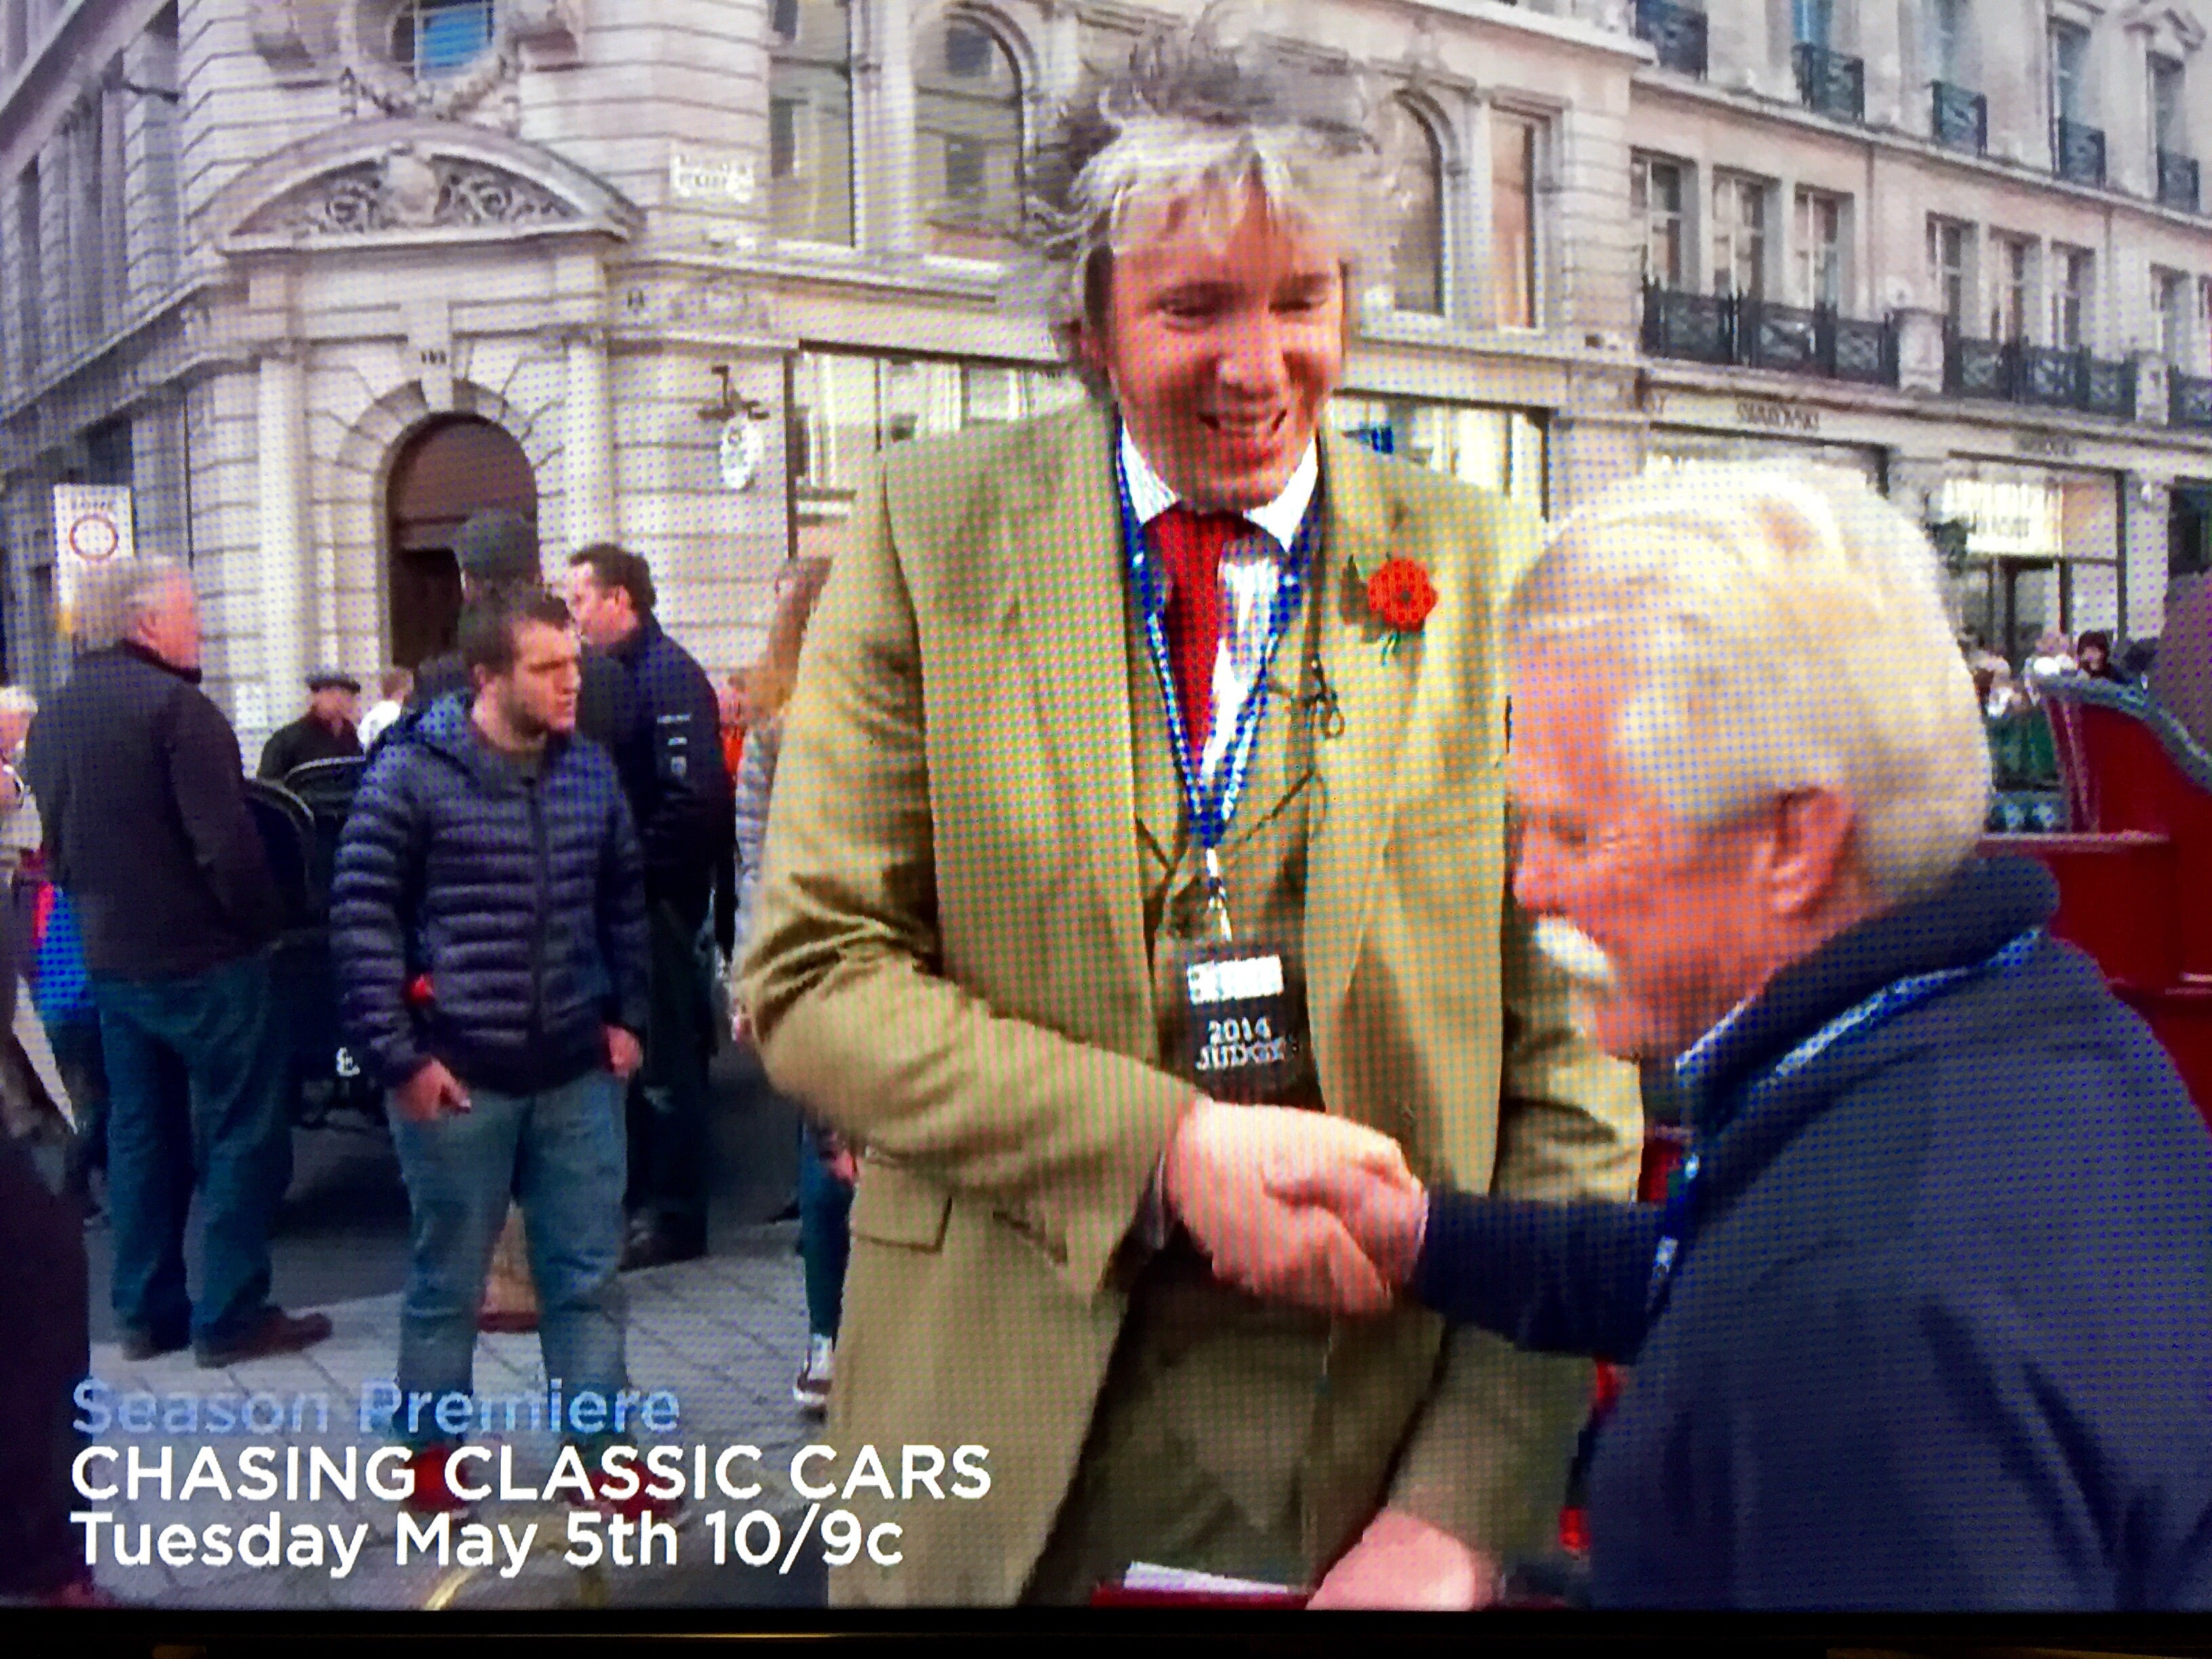 Chasing Classic Cars/Wheeler Dealers Crossover?